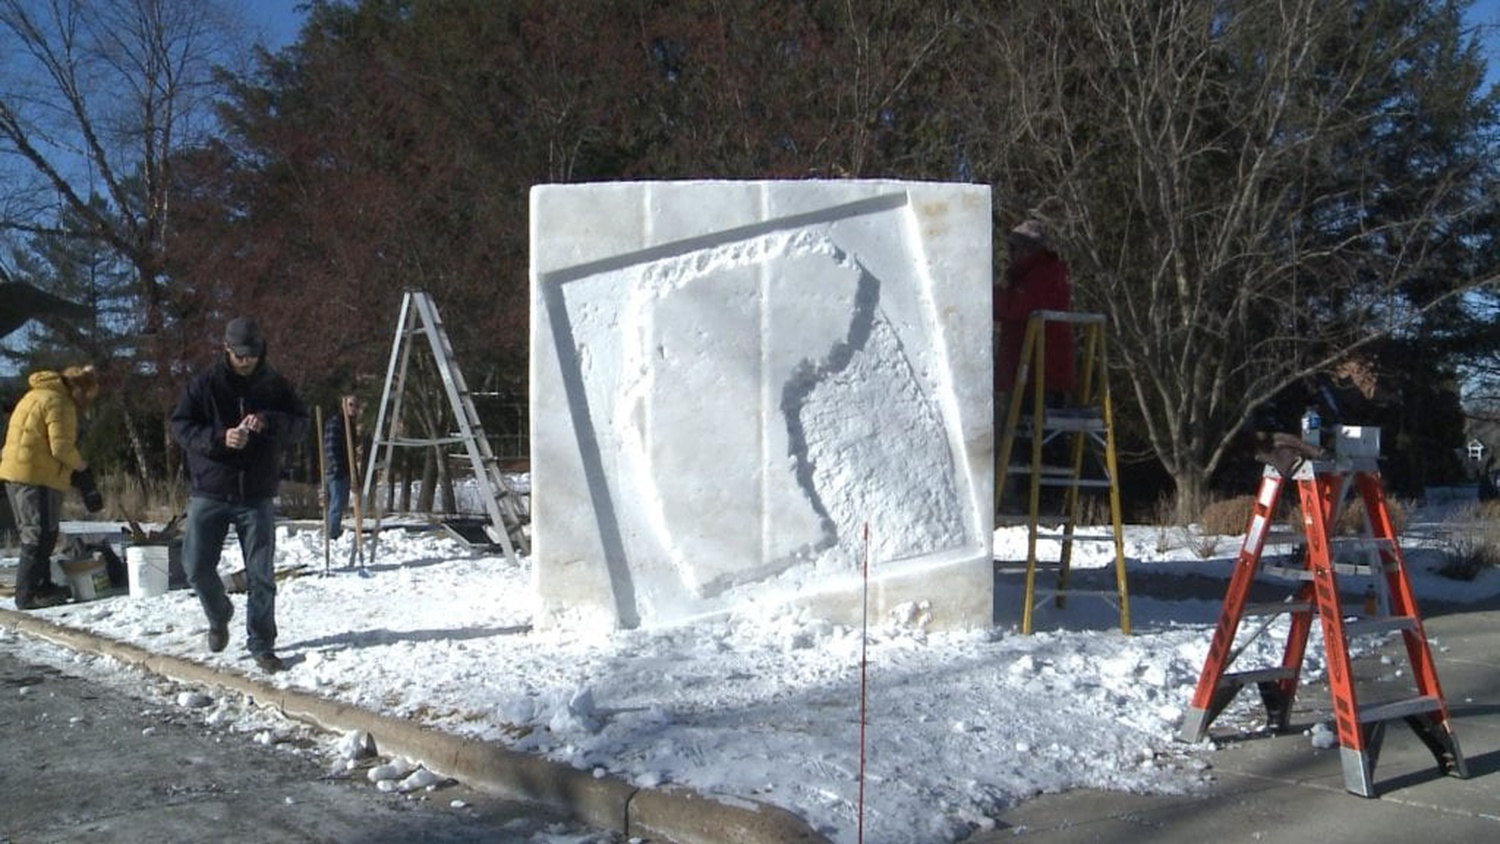 Snow sculpture. Image courtesy: WAOW TV.